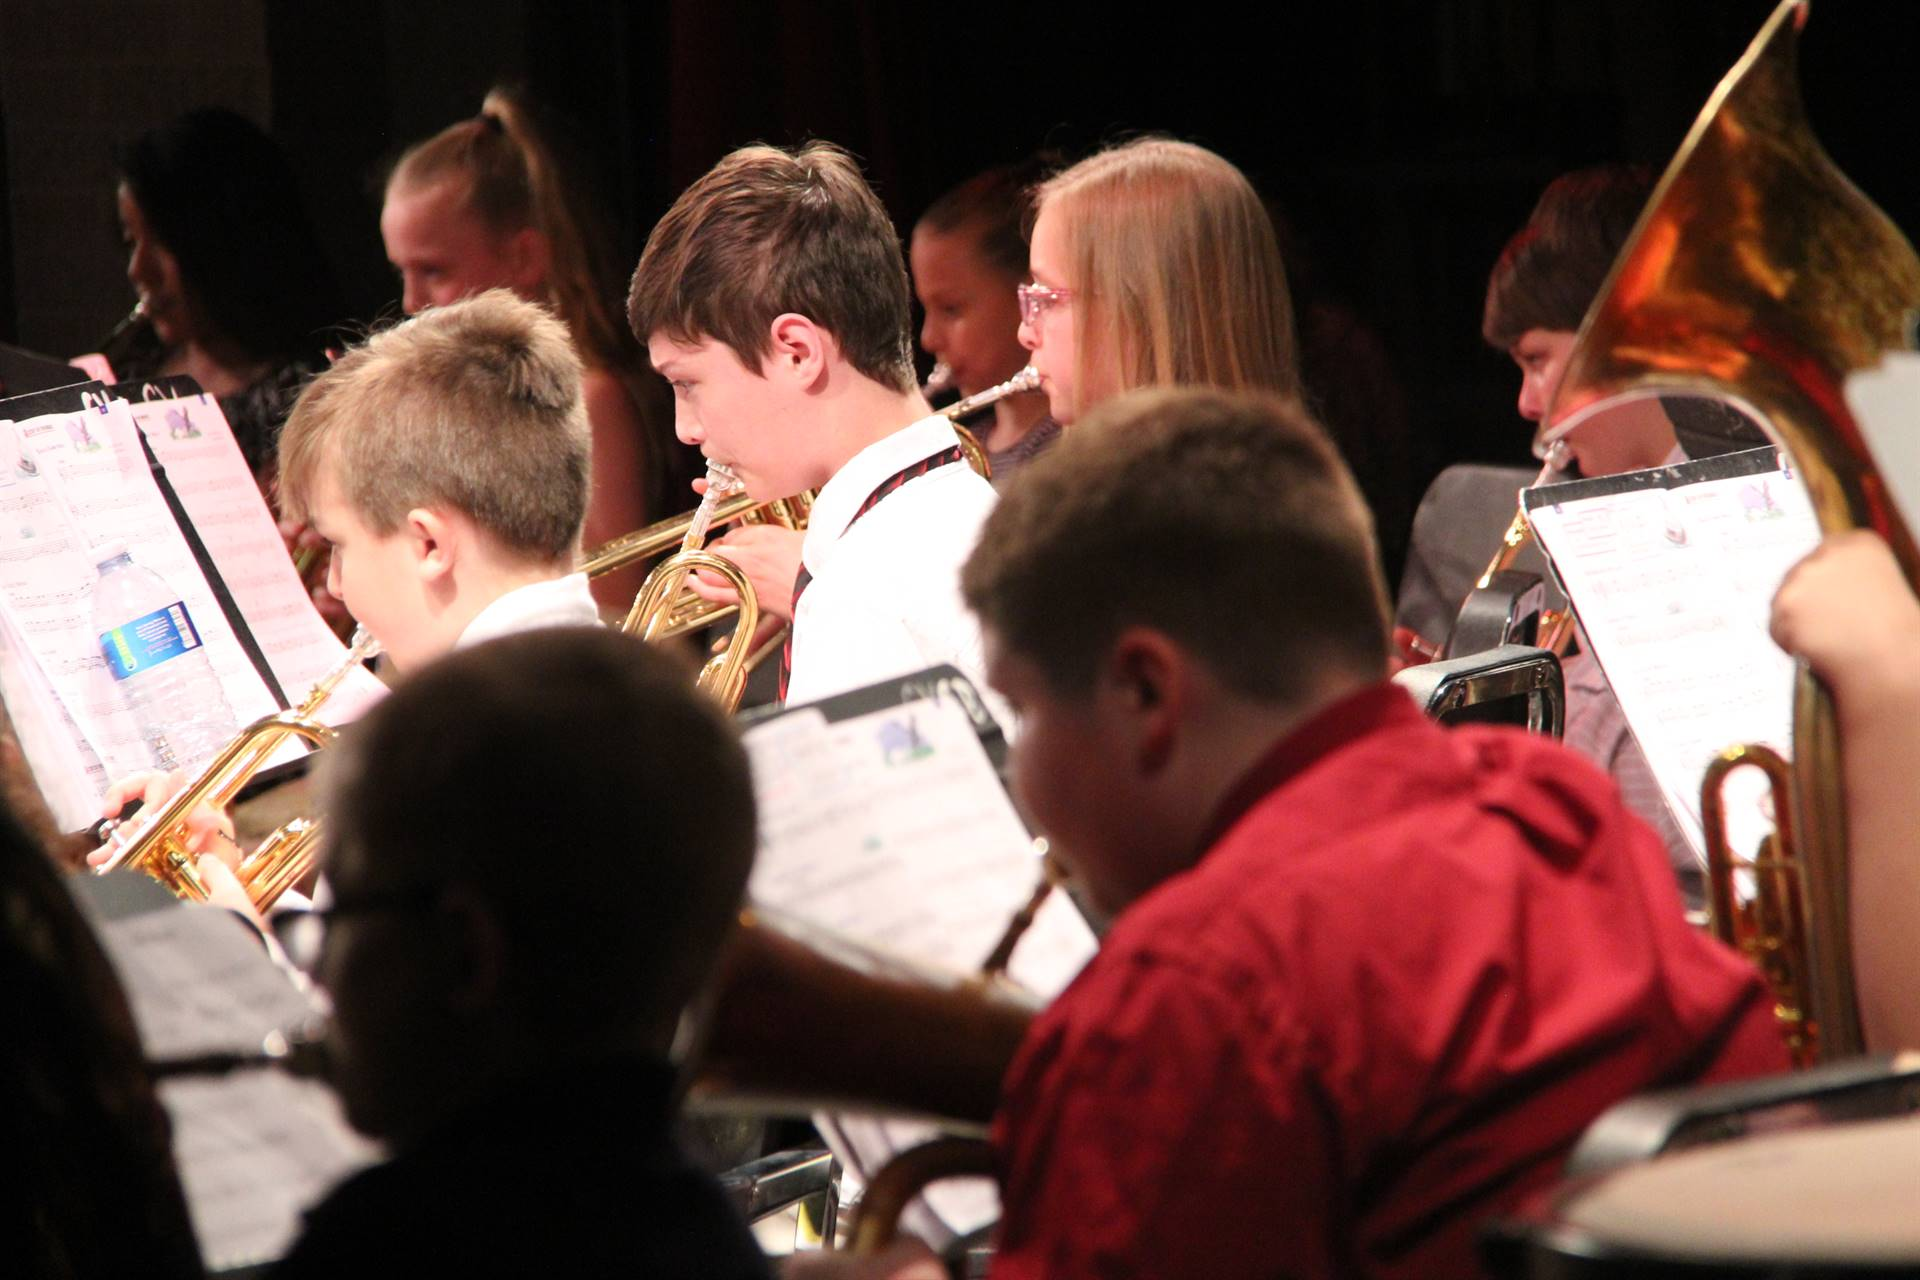 medium shot of students playing instruments